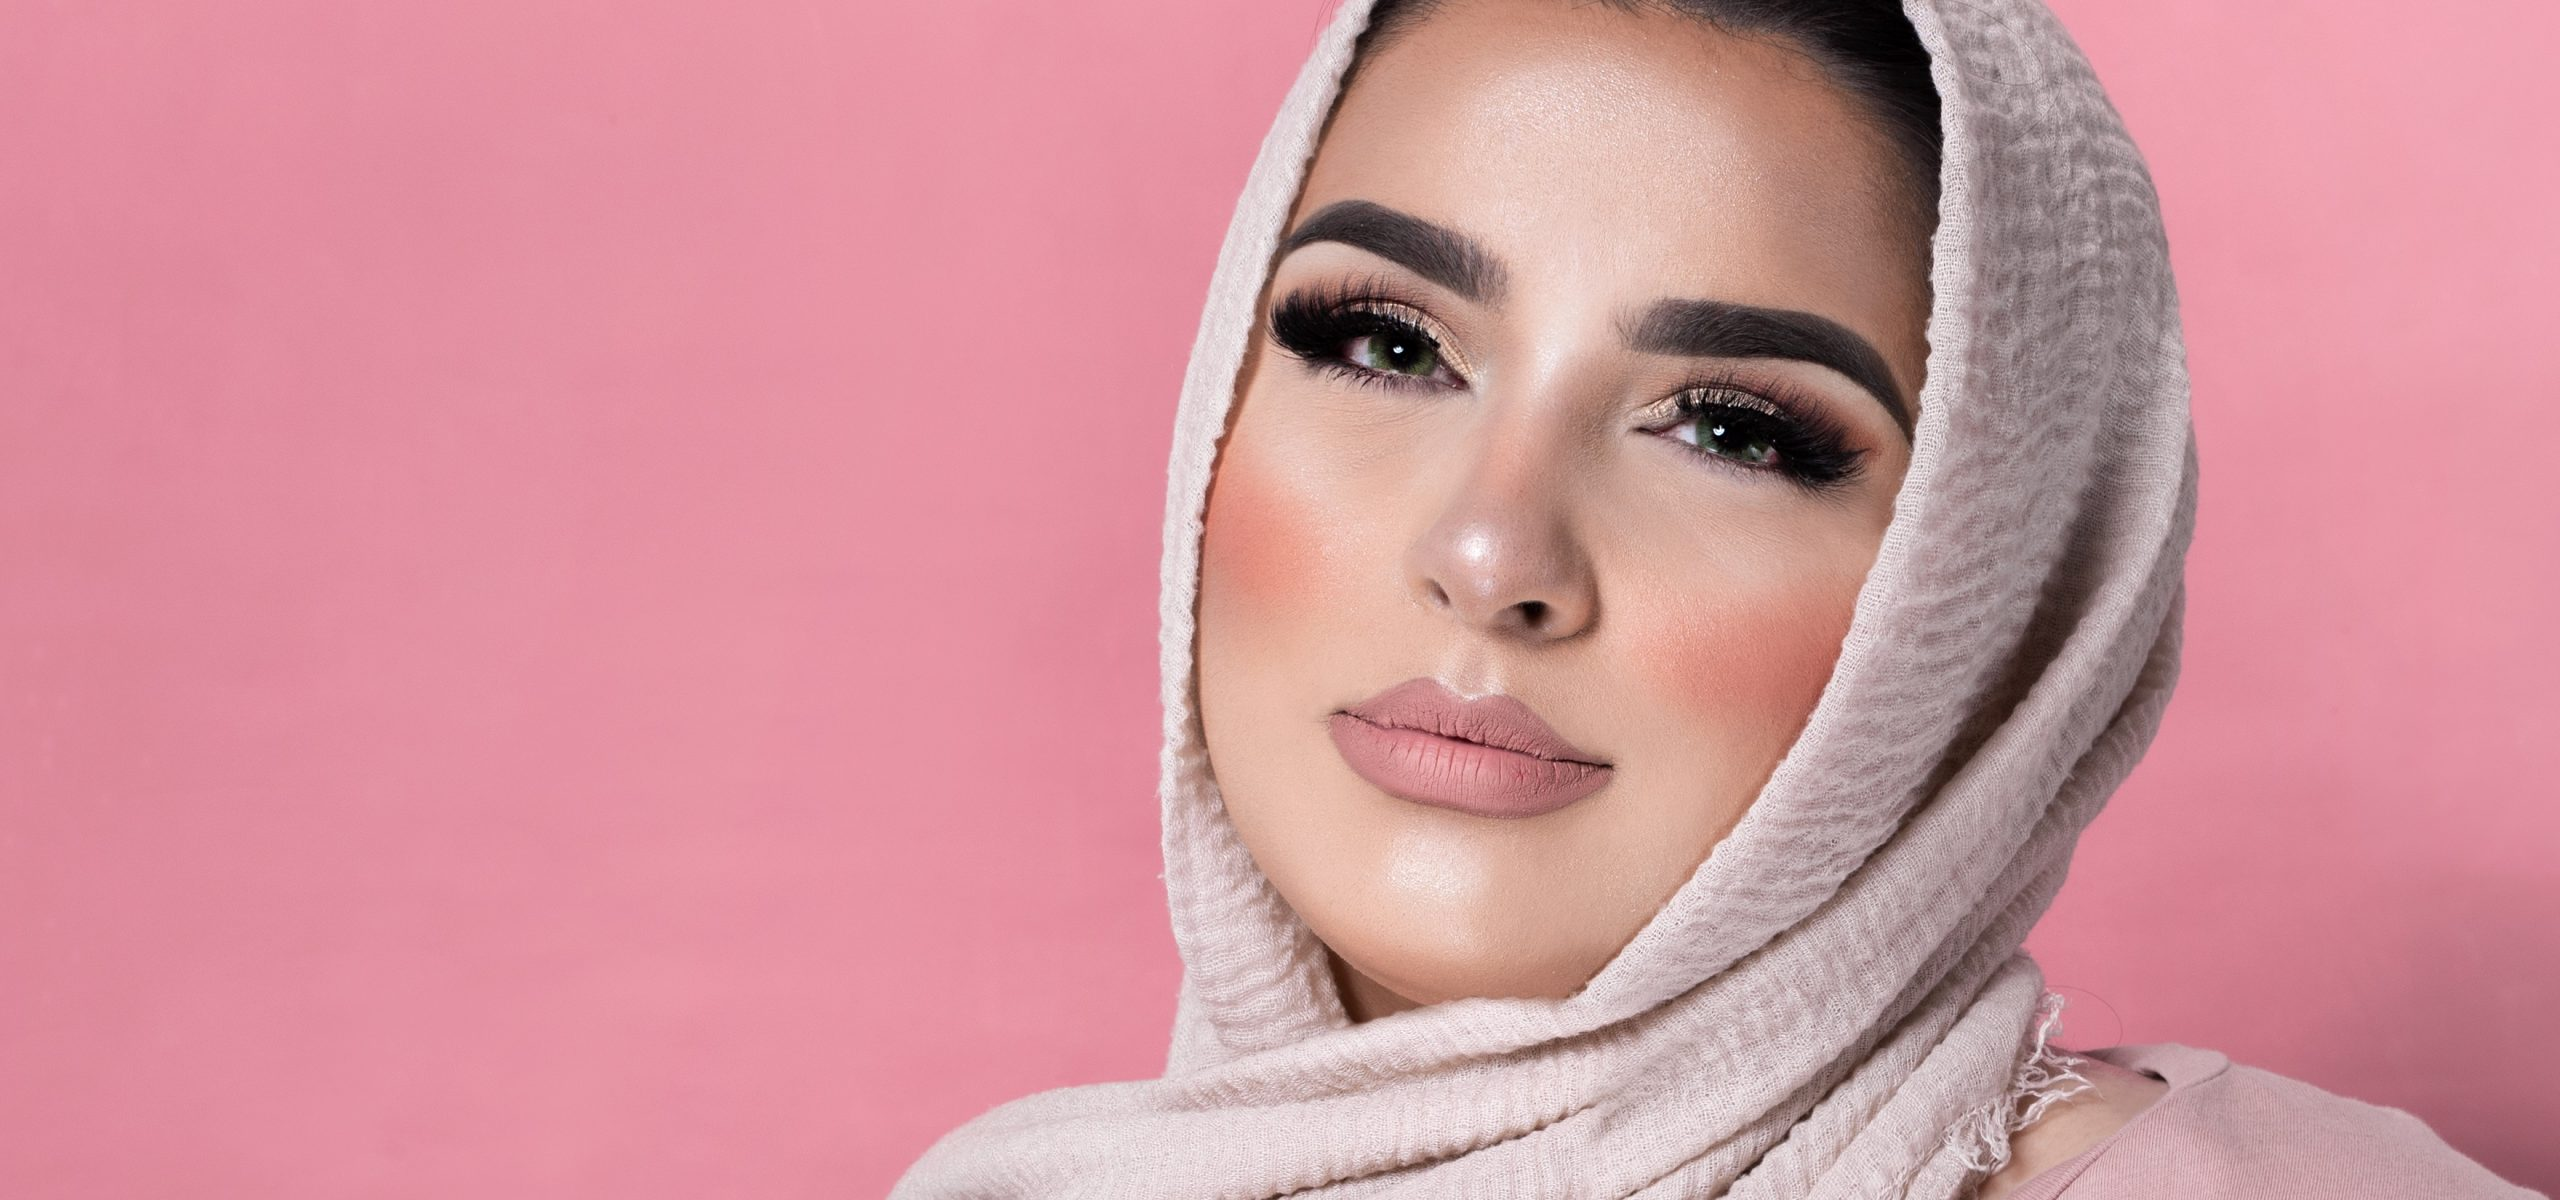 fiercelyglowing hijab kleurlenzen lashes